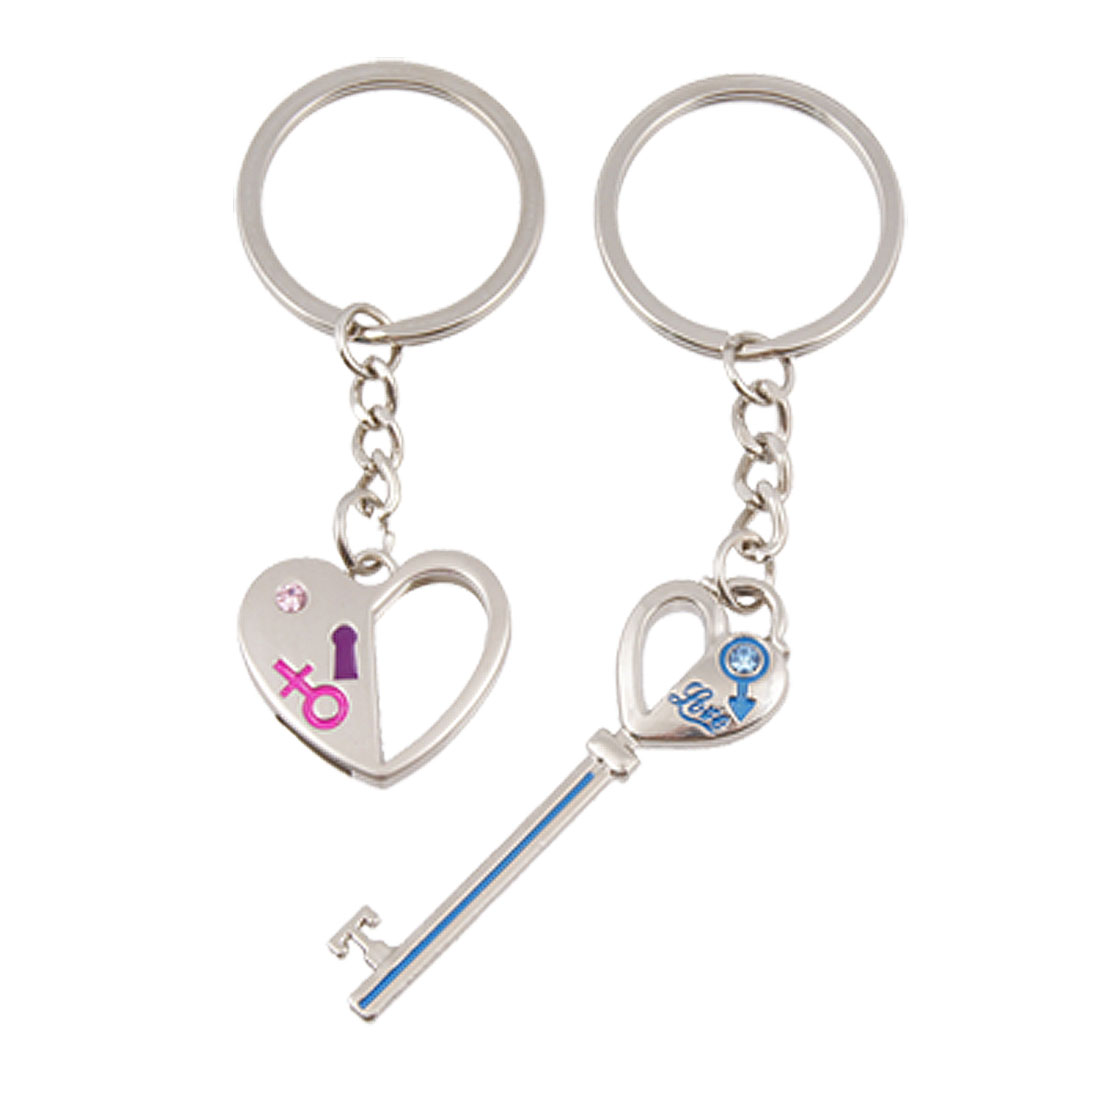 Lovers Gender Symbol Prints Heart Lock w Arrow Key Pendant Keyring Keychain